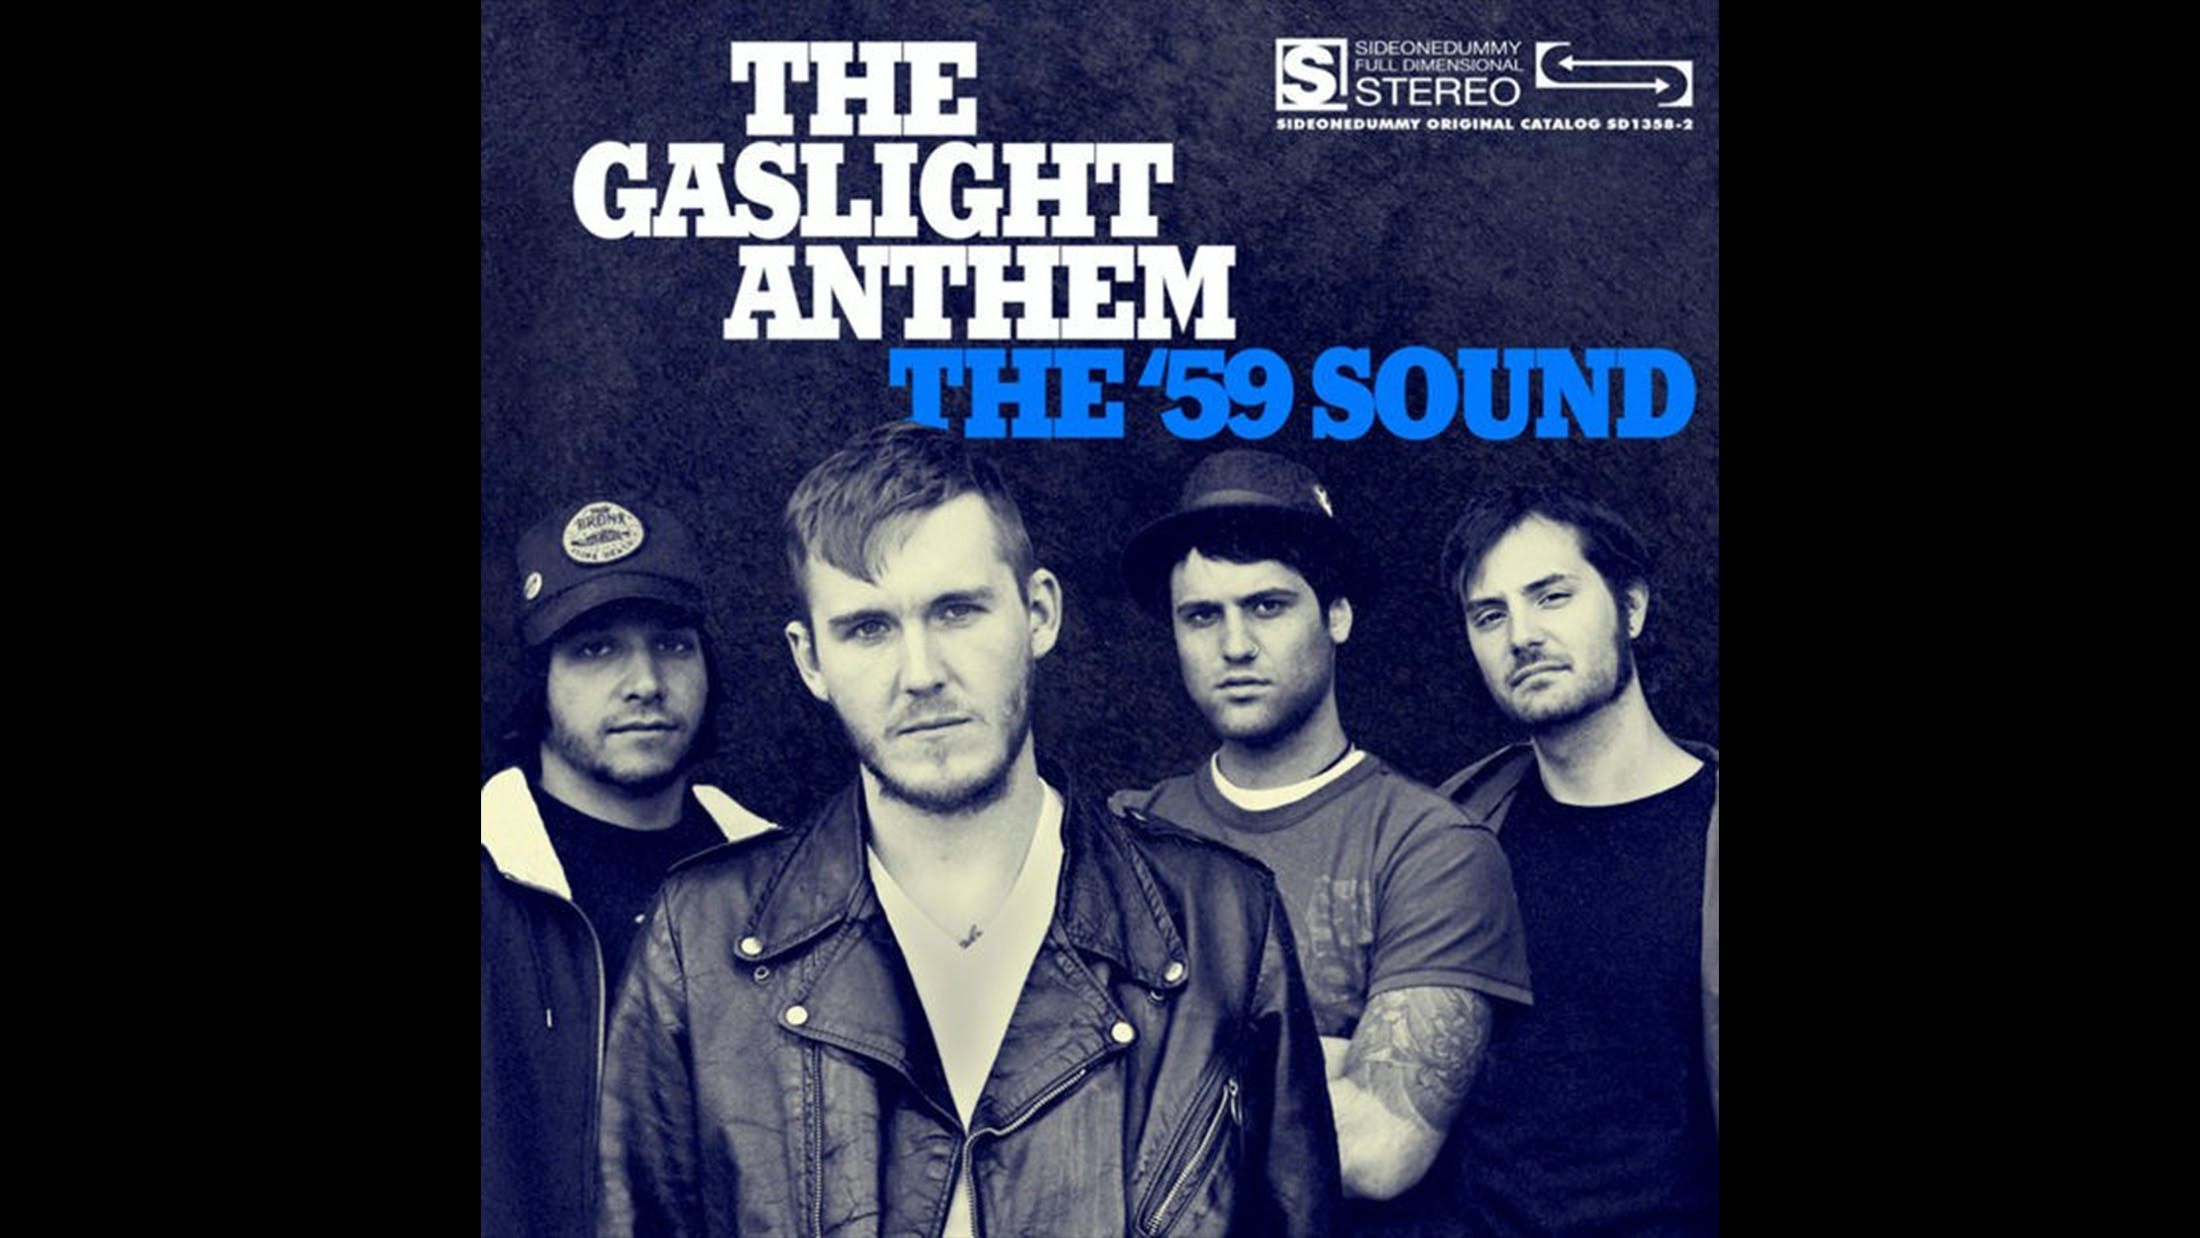 The Gaslight Anthem Will Reunite And Play The '59 Sound In Full